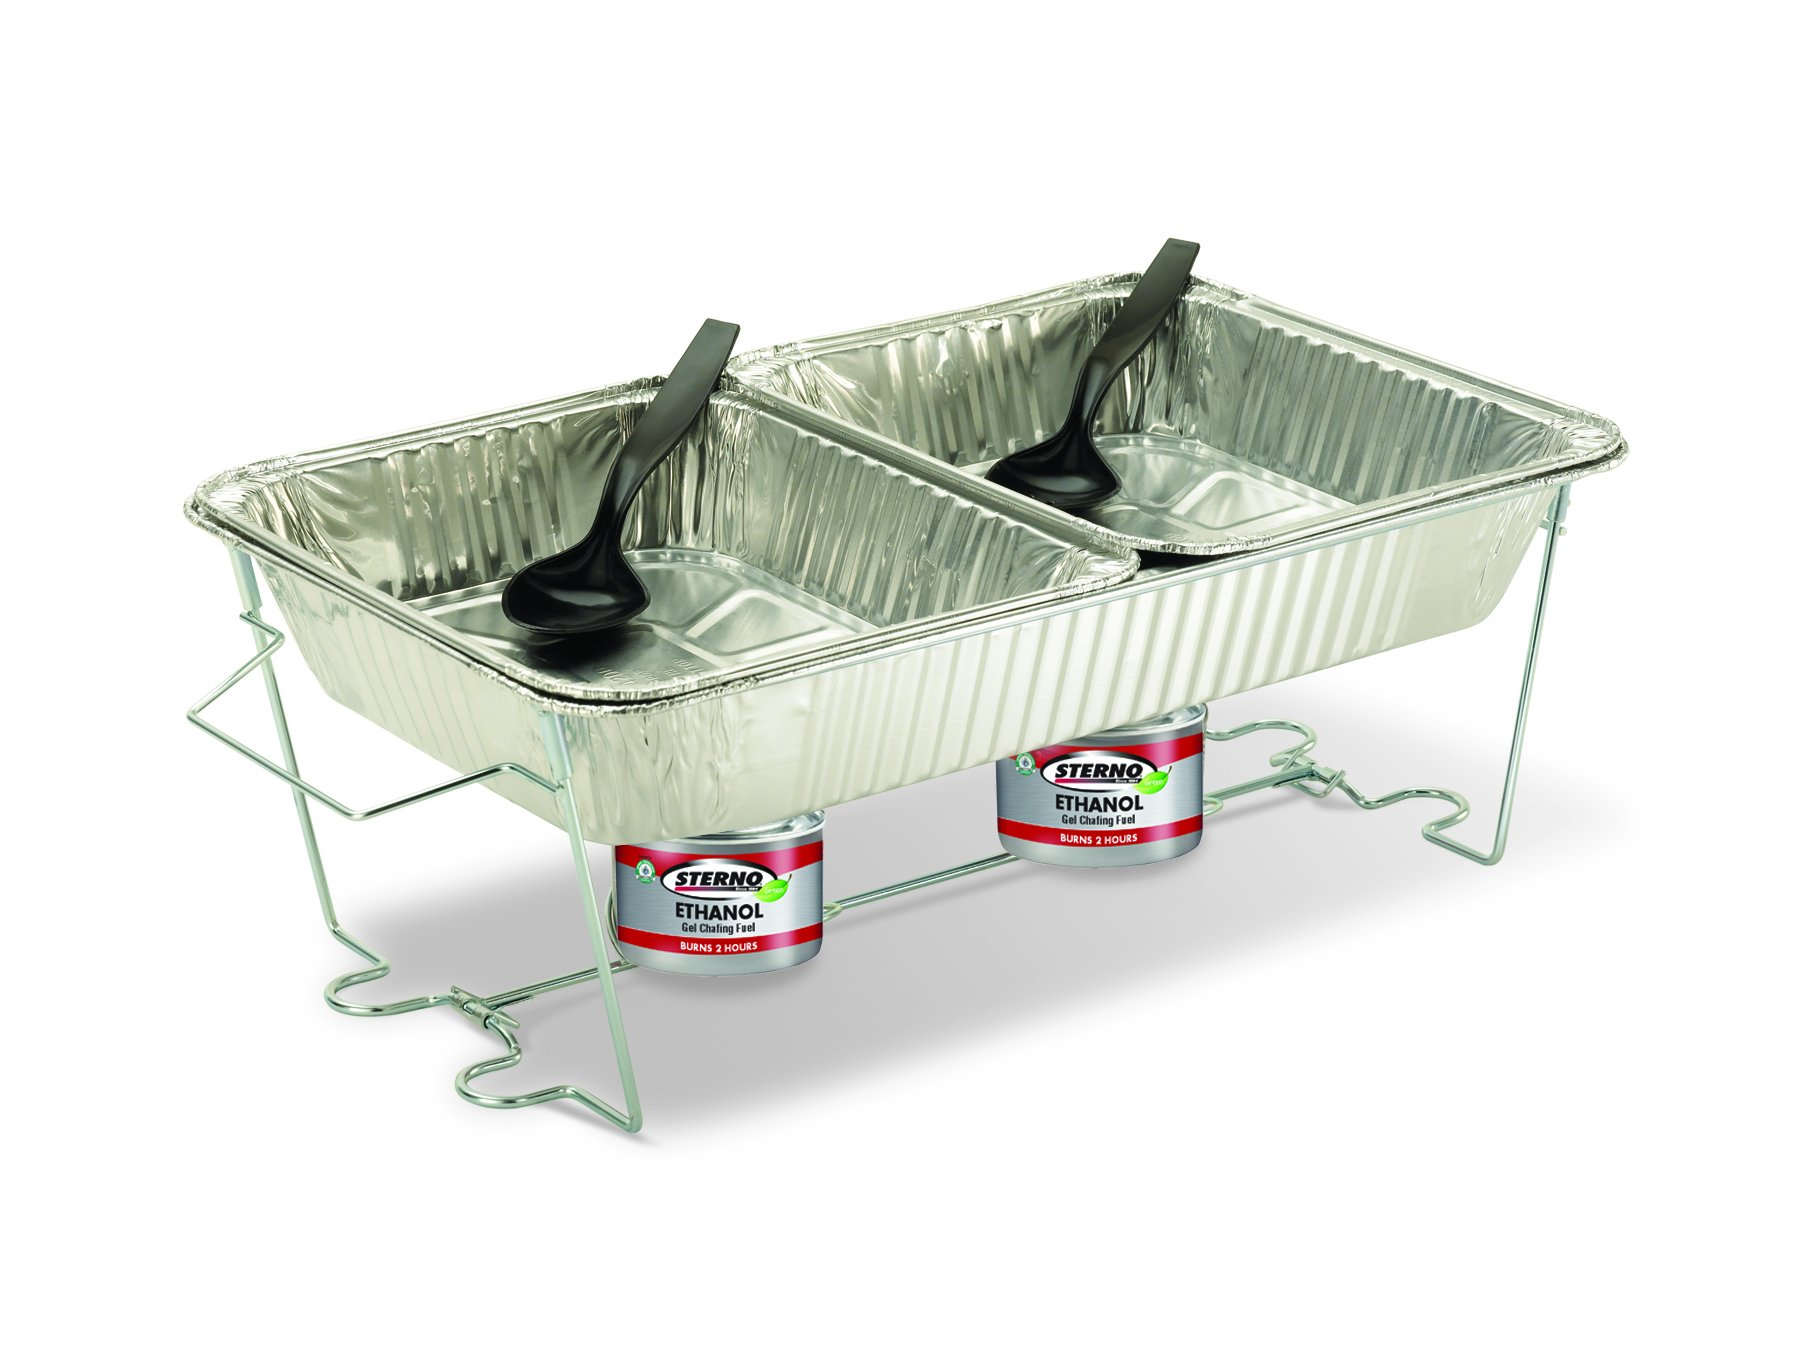 Sterno 70181 Buffet Kit, Full by Sterno